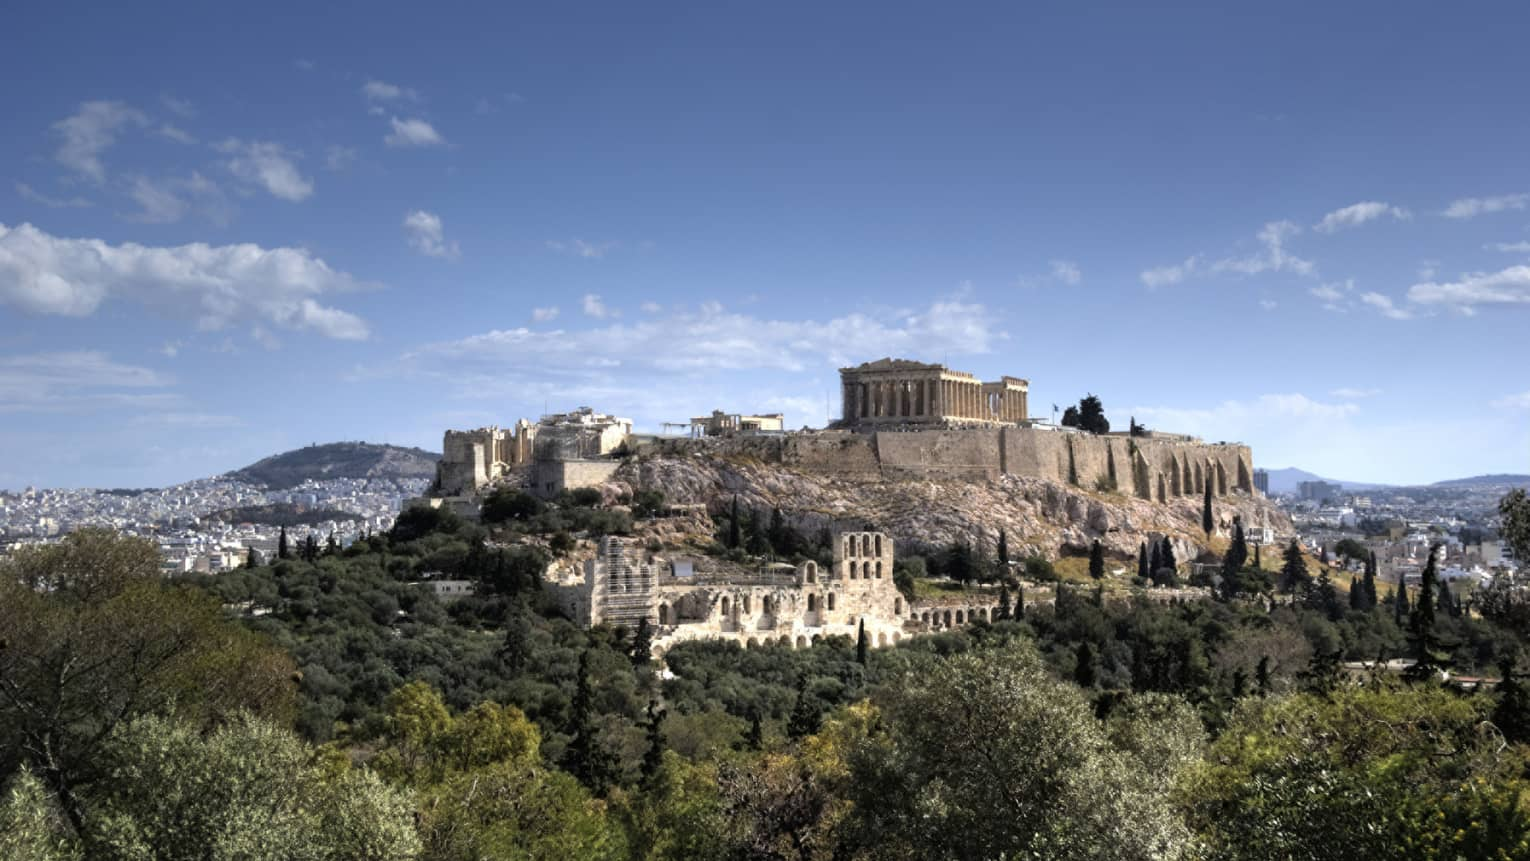 Ancient ruins of Acropolis on mountain surrounded by greenery